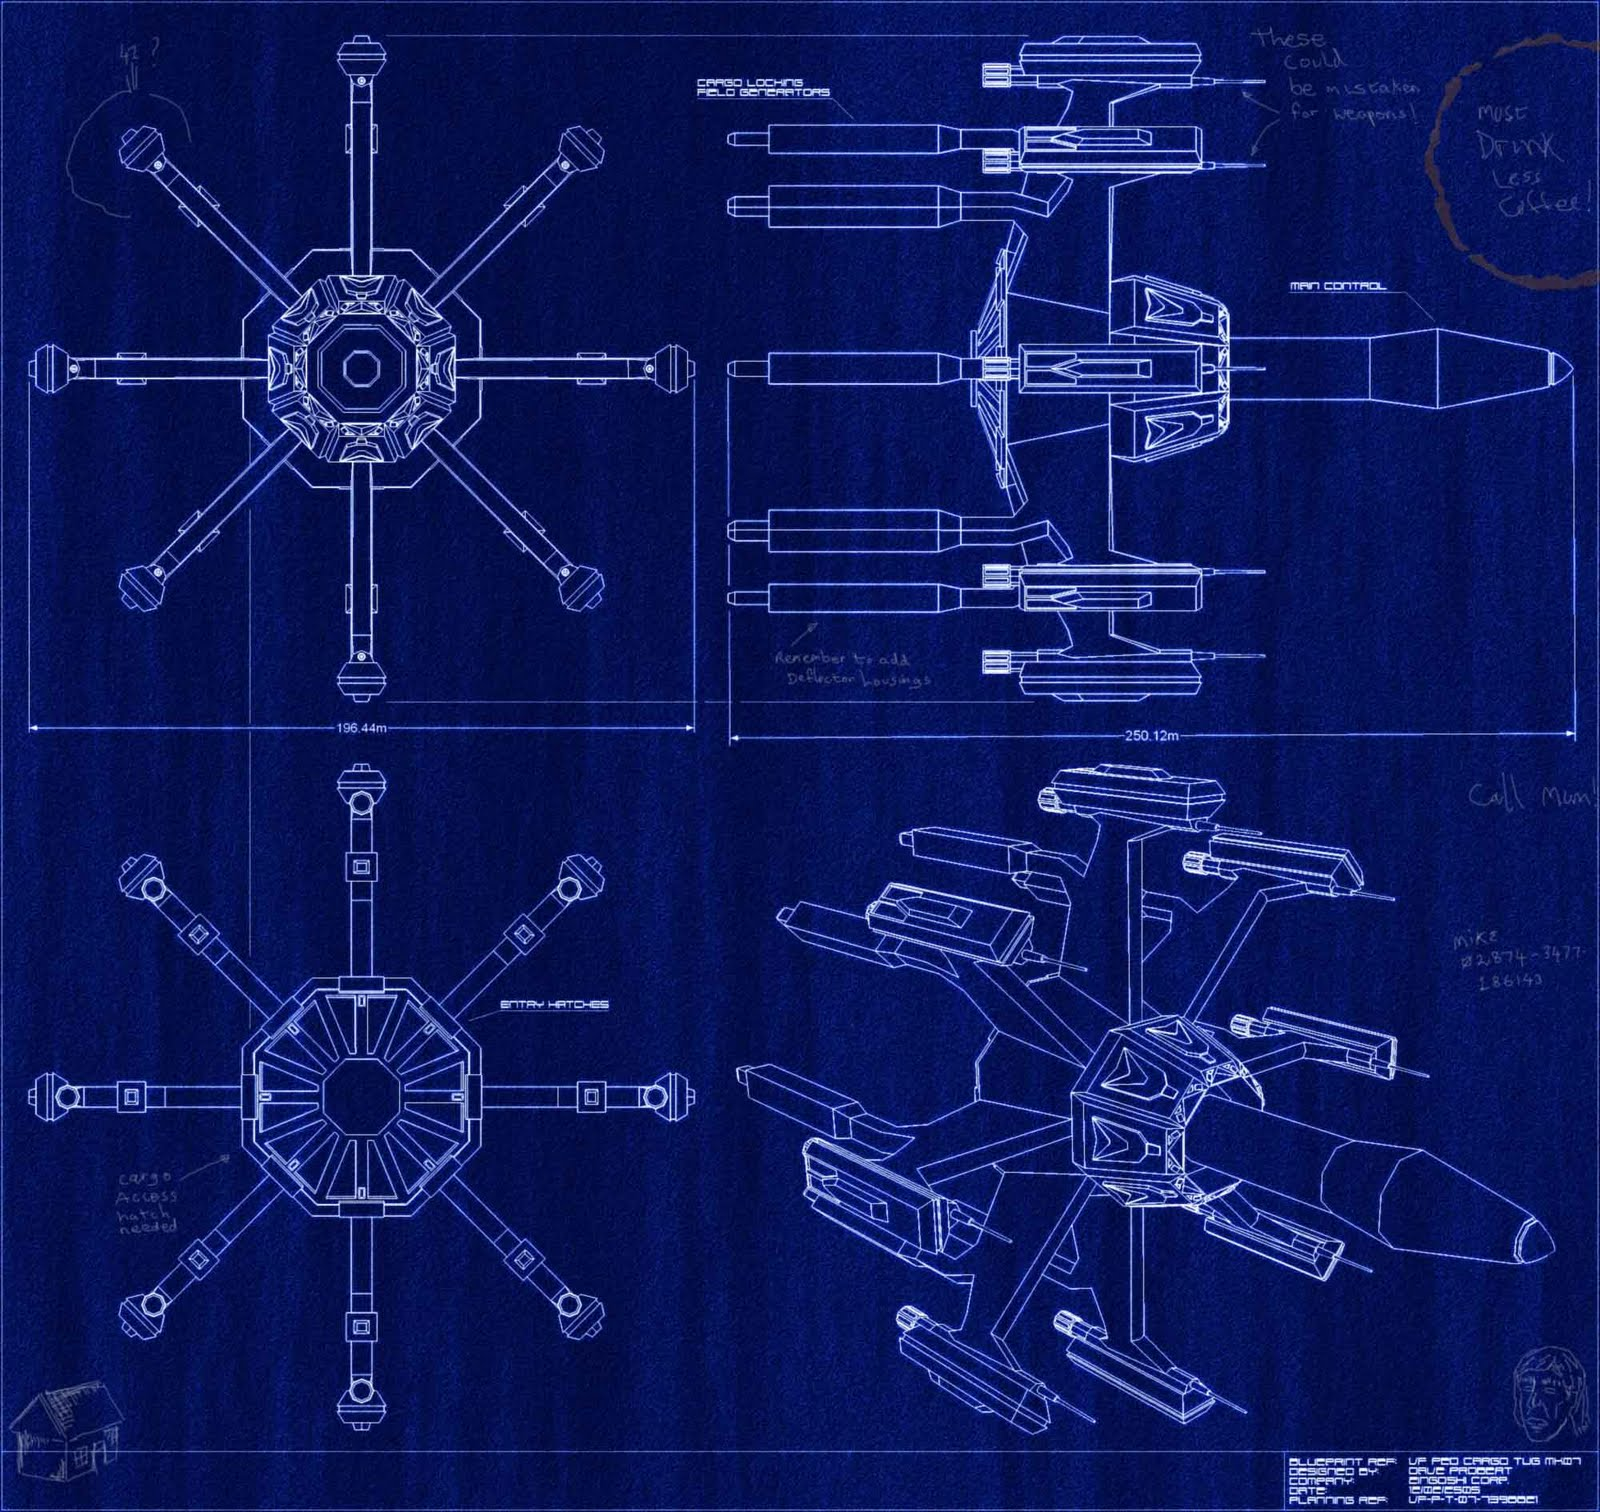 Movement story and structure blueprints similar to model sheets these are examples of blueprints used to create fictional space shuttles i notice they work exactly like a model sheet so it would be interesting to malvernweather Images